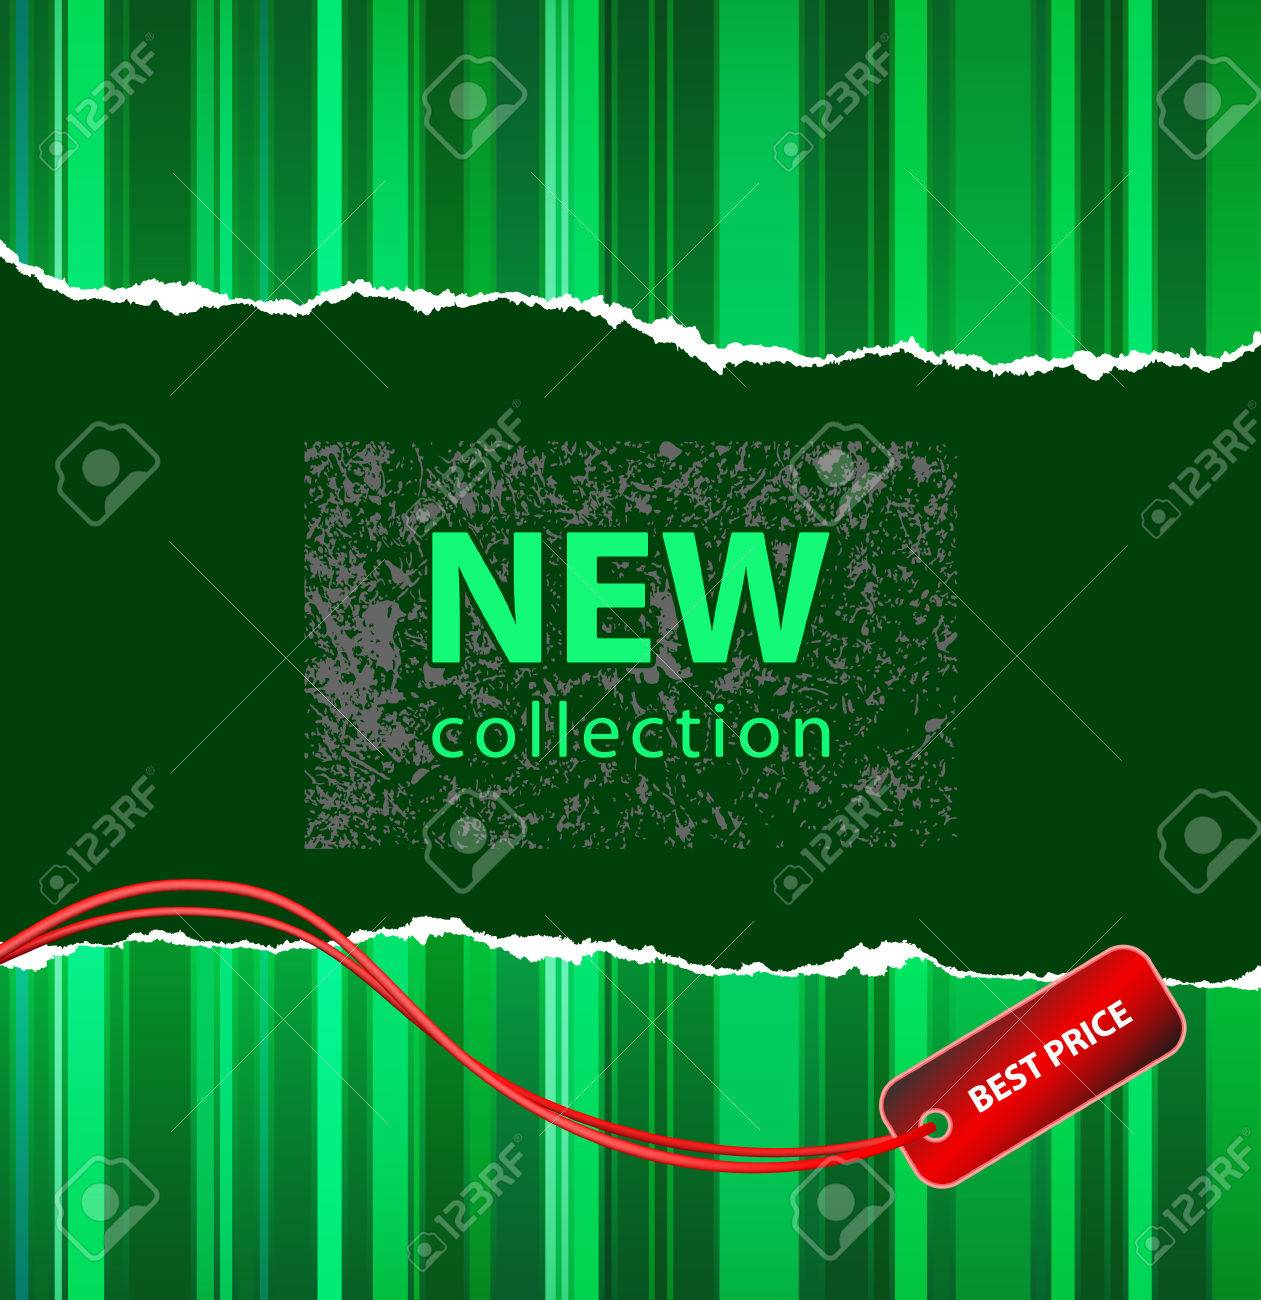 Vector style design for a fashion new collection or marketing action Stock Vector - 5137838